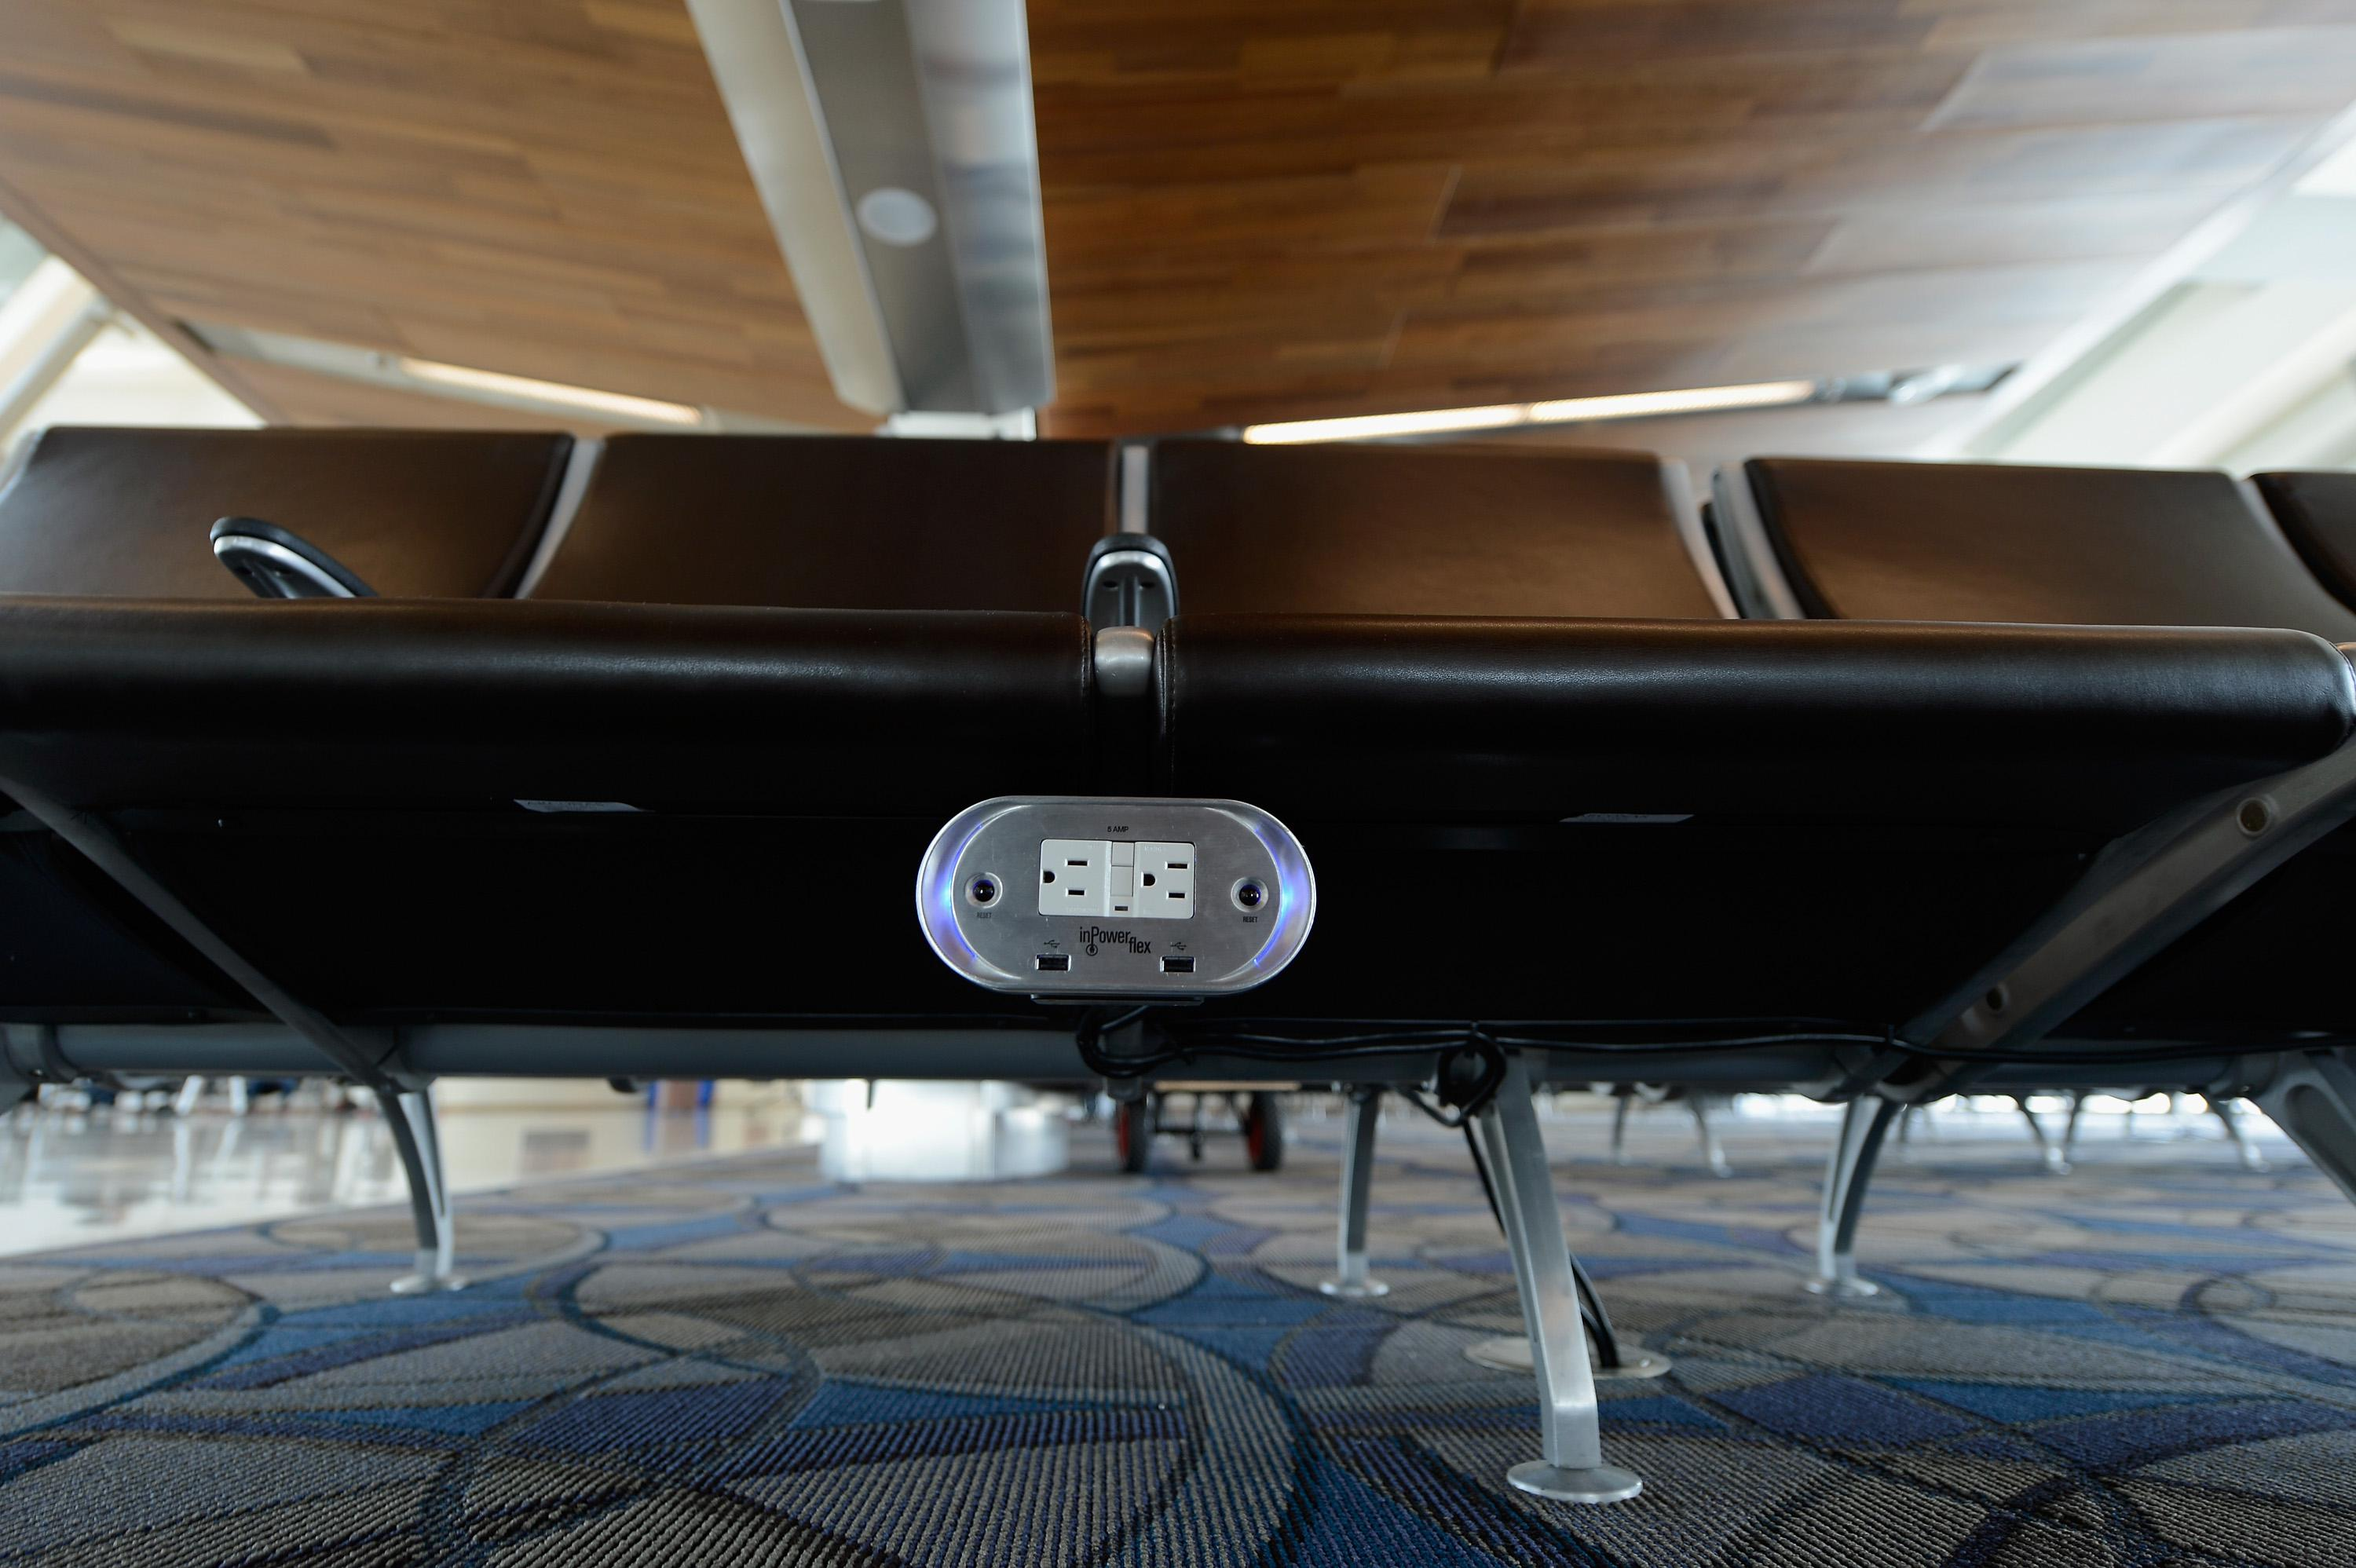 Power outlets are placed under every bench of the new north concourse the Tom Bradley International Terminal at Los Angeles International Airport.